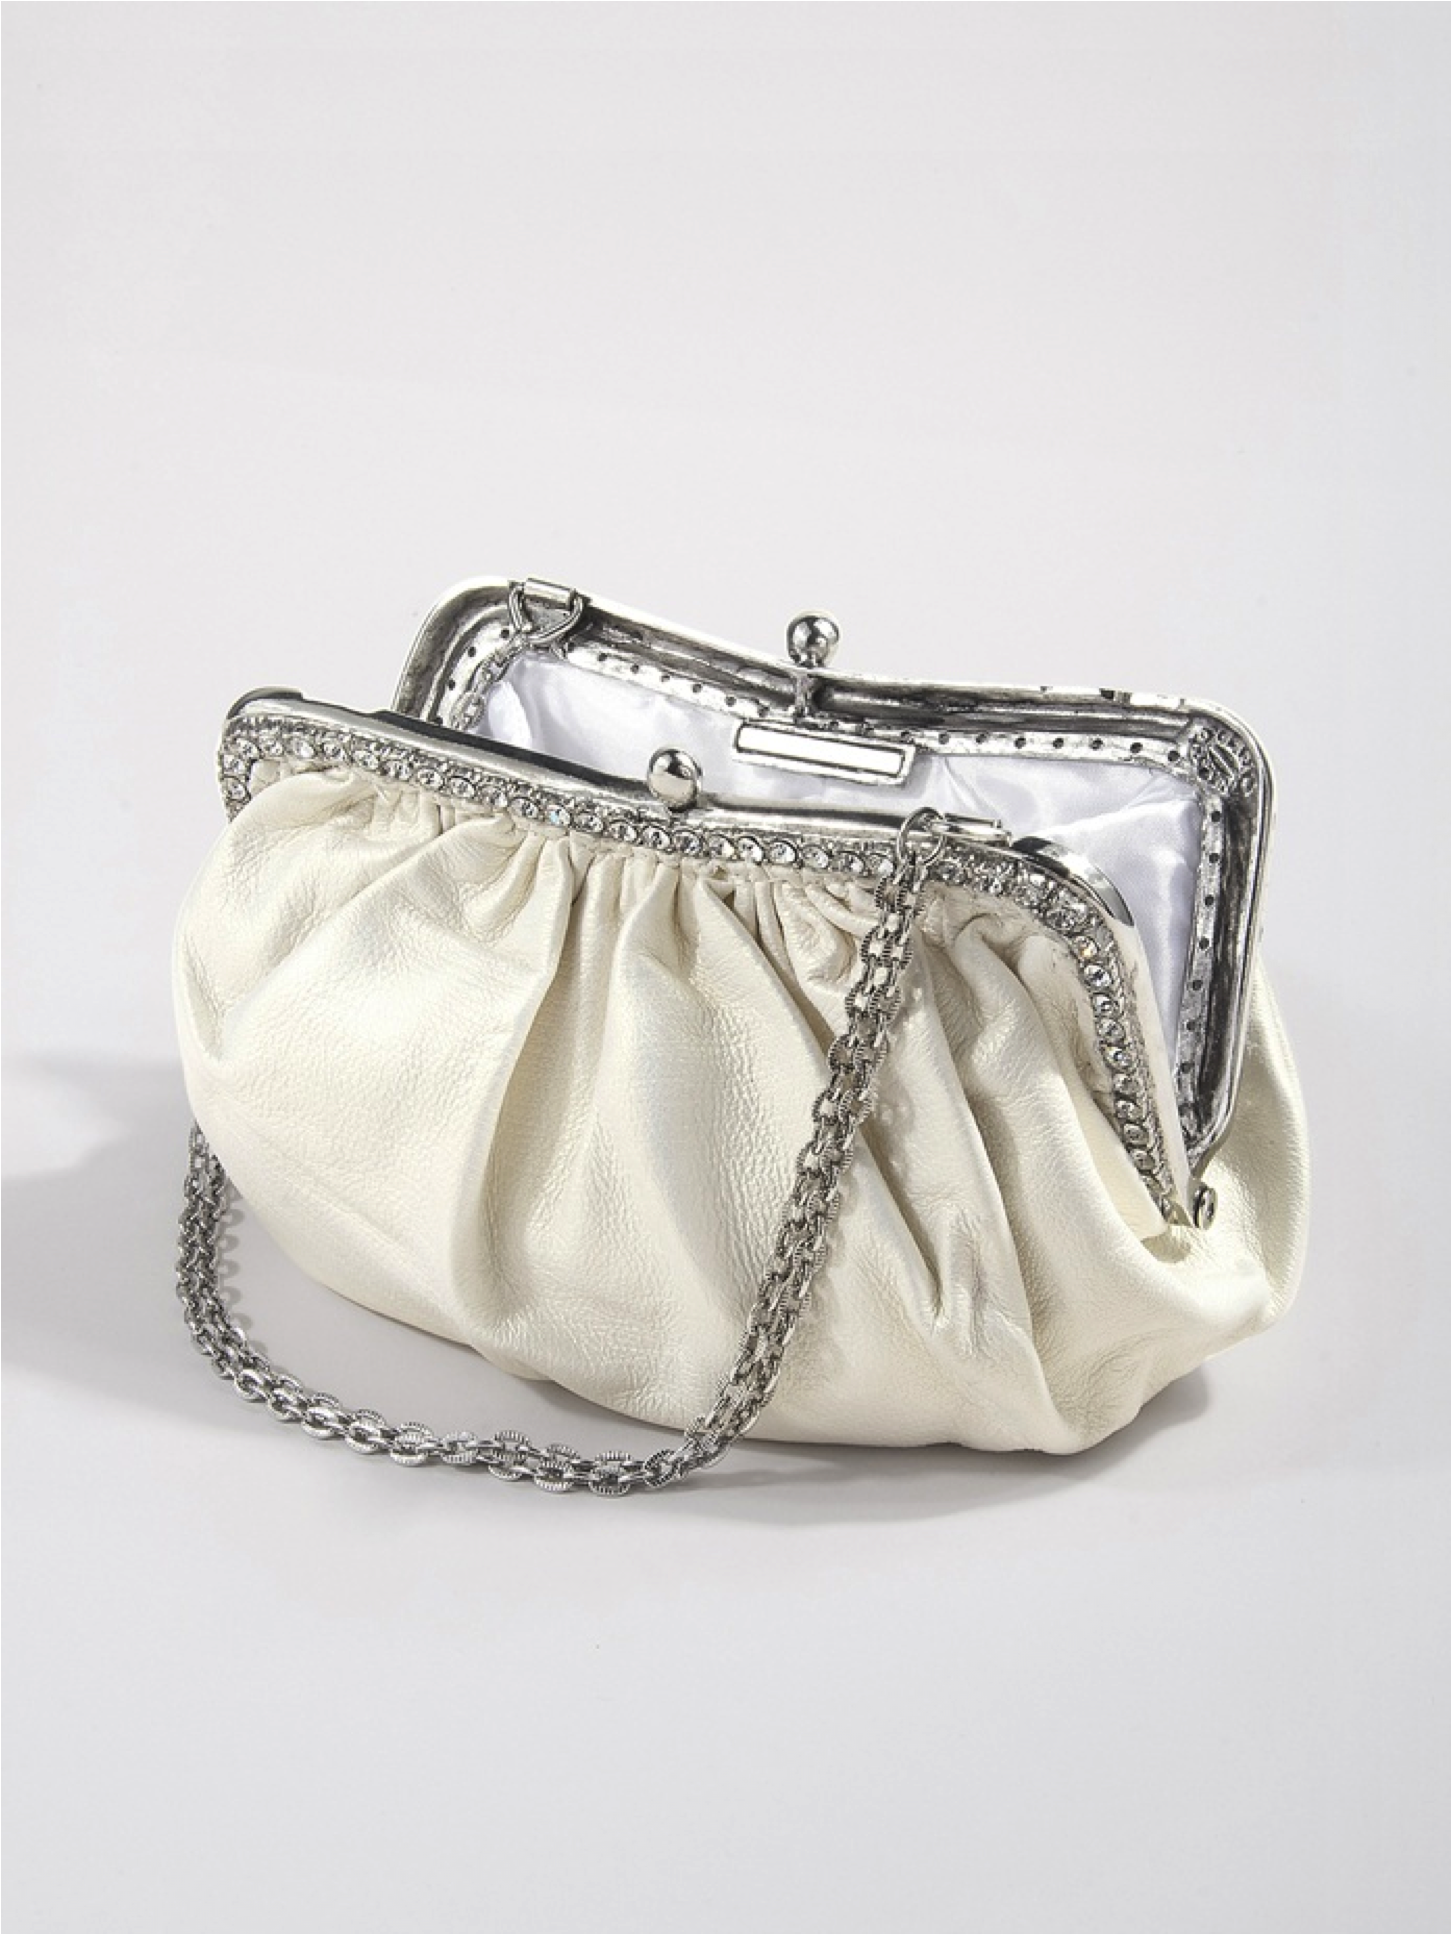 Designer-bridal-accessories-ivory-classic-wedding-clutch.original